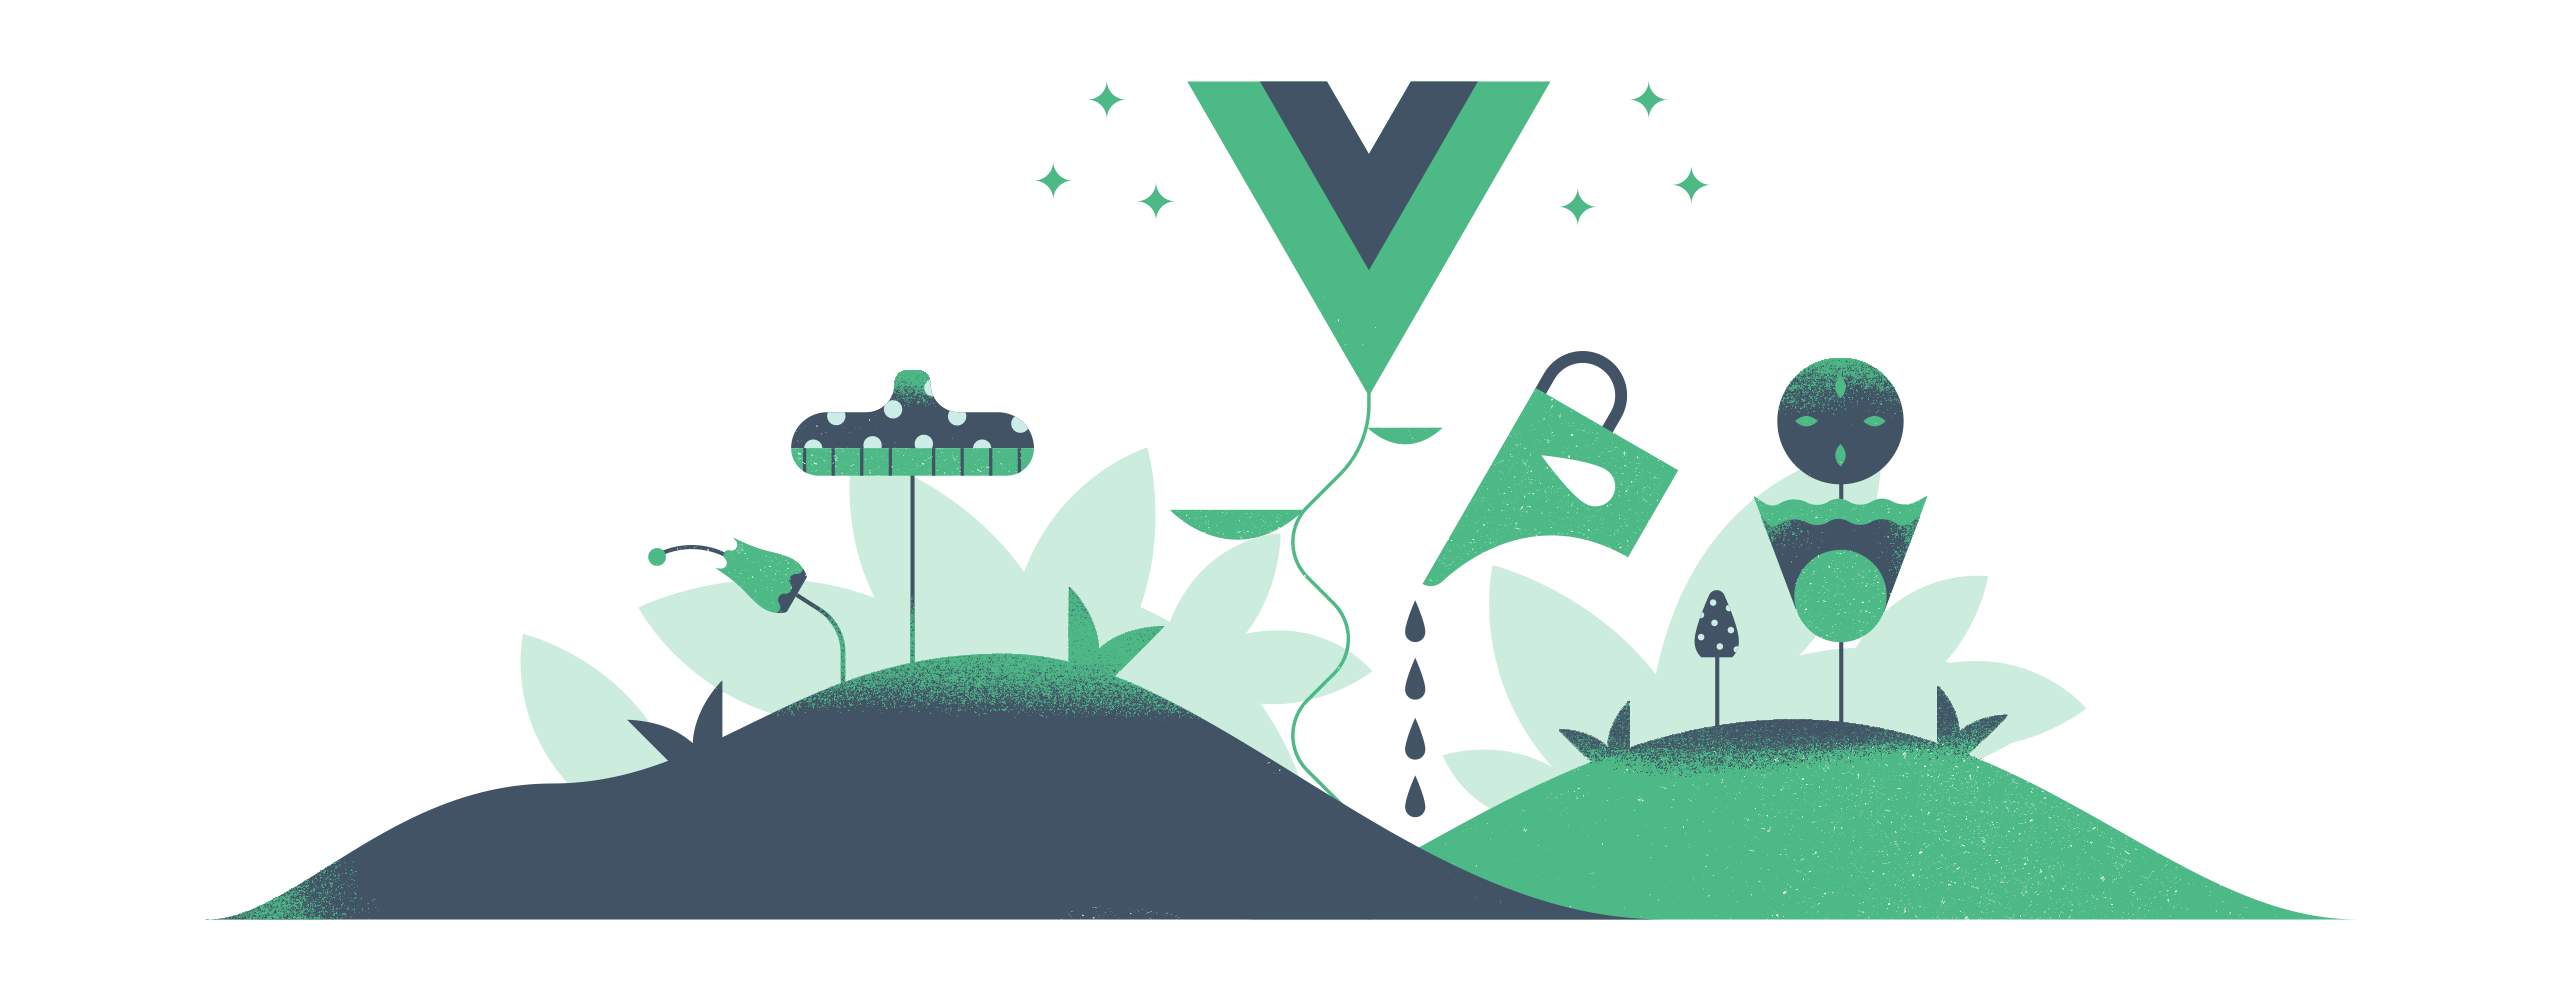 Why We Love, Use, And Support Vue.js